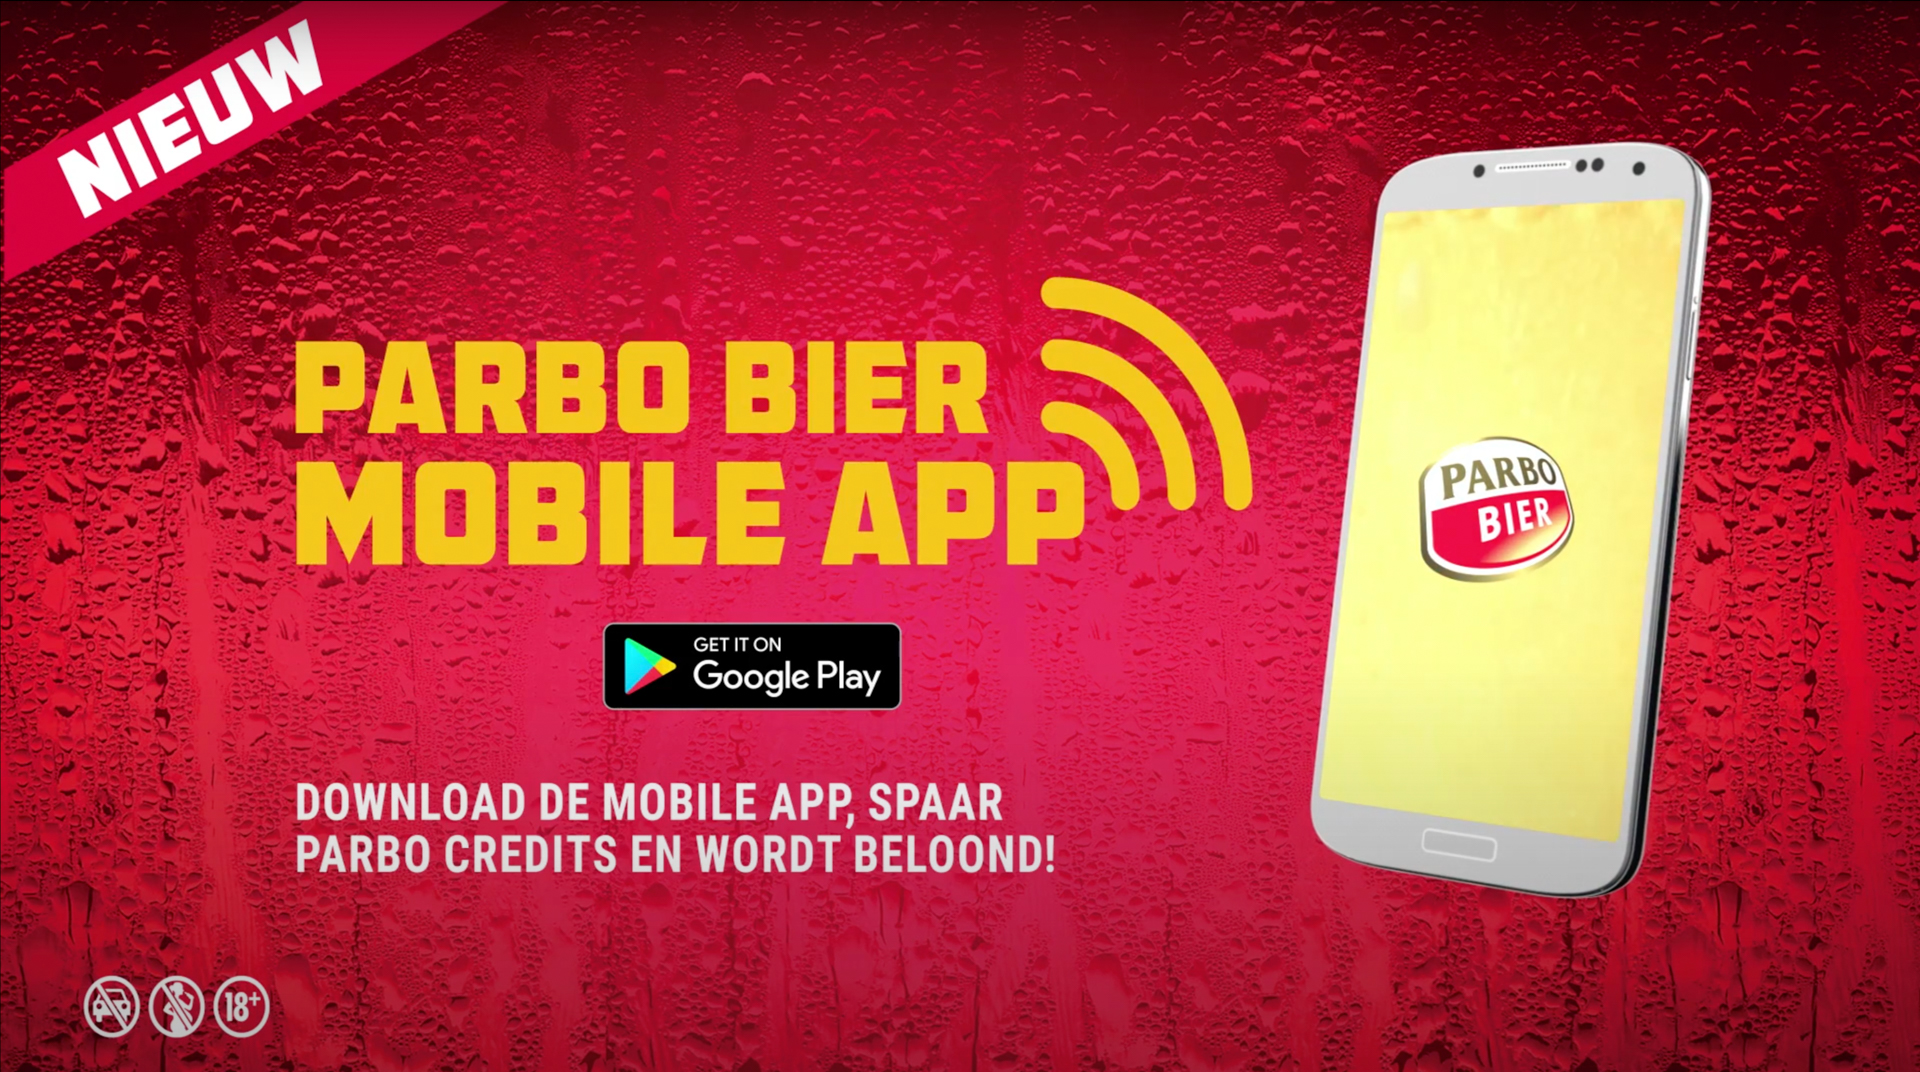 Parbo Mobile App TVC